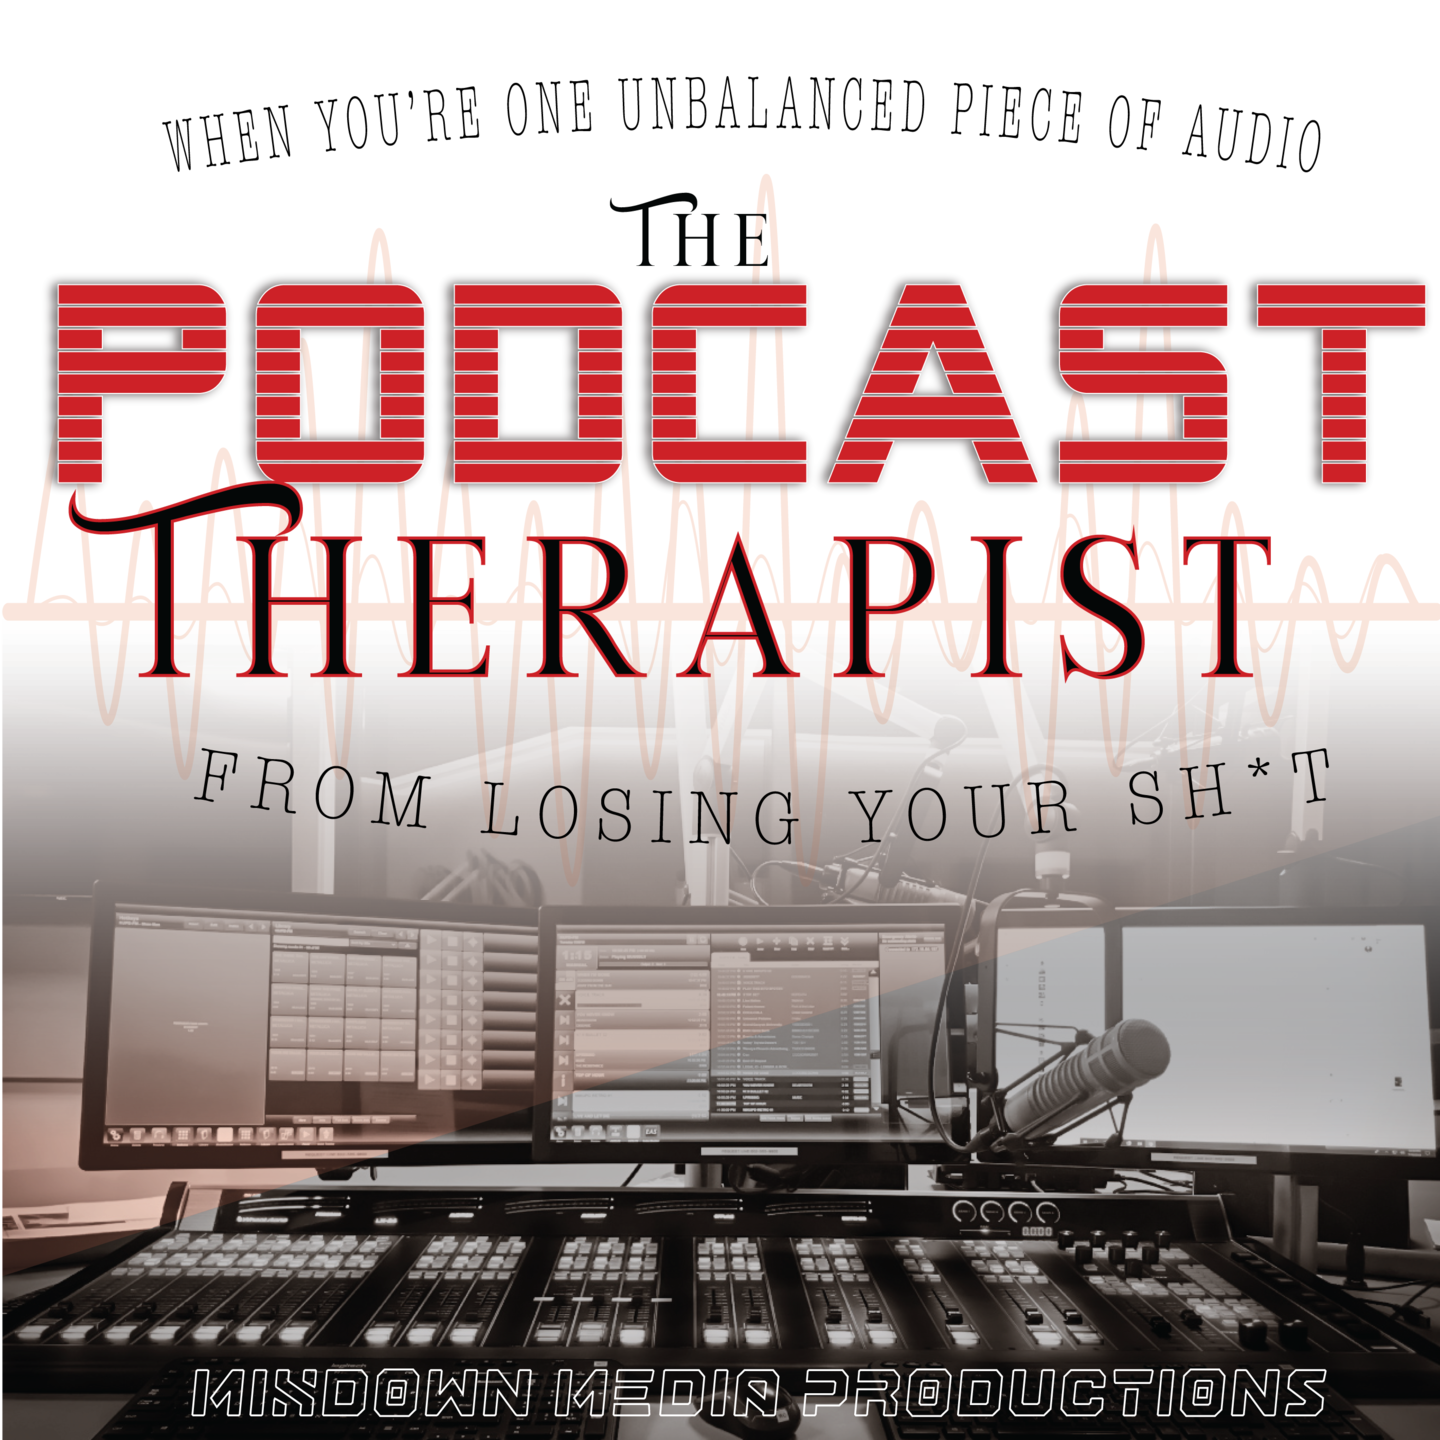 The Podcast Therapist